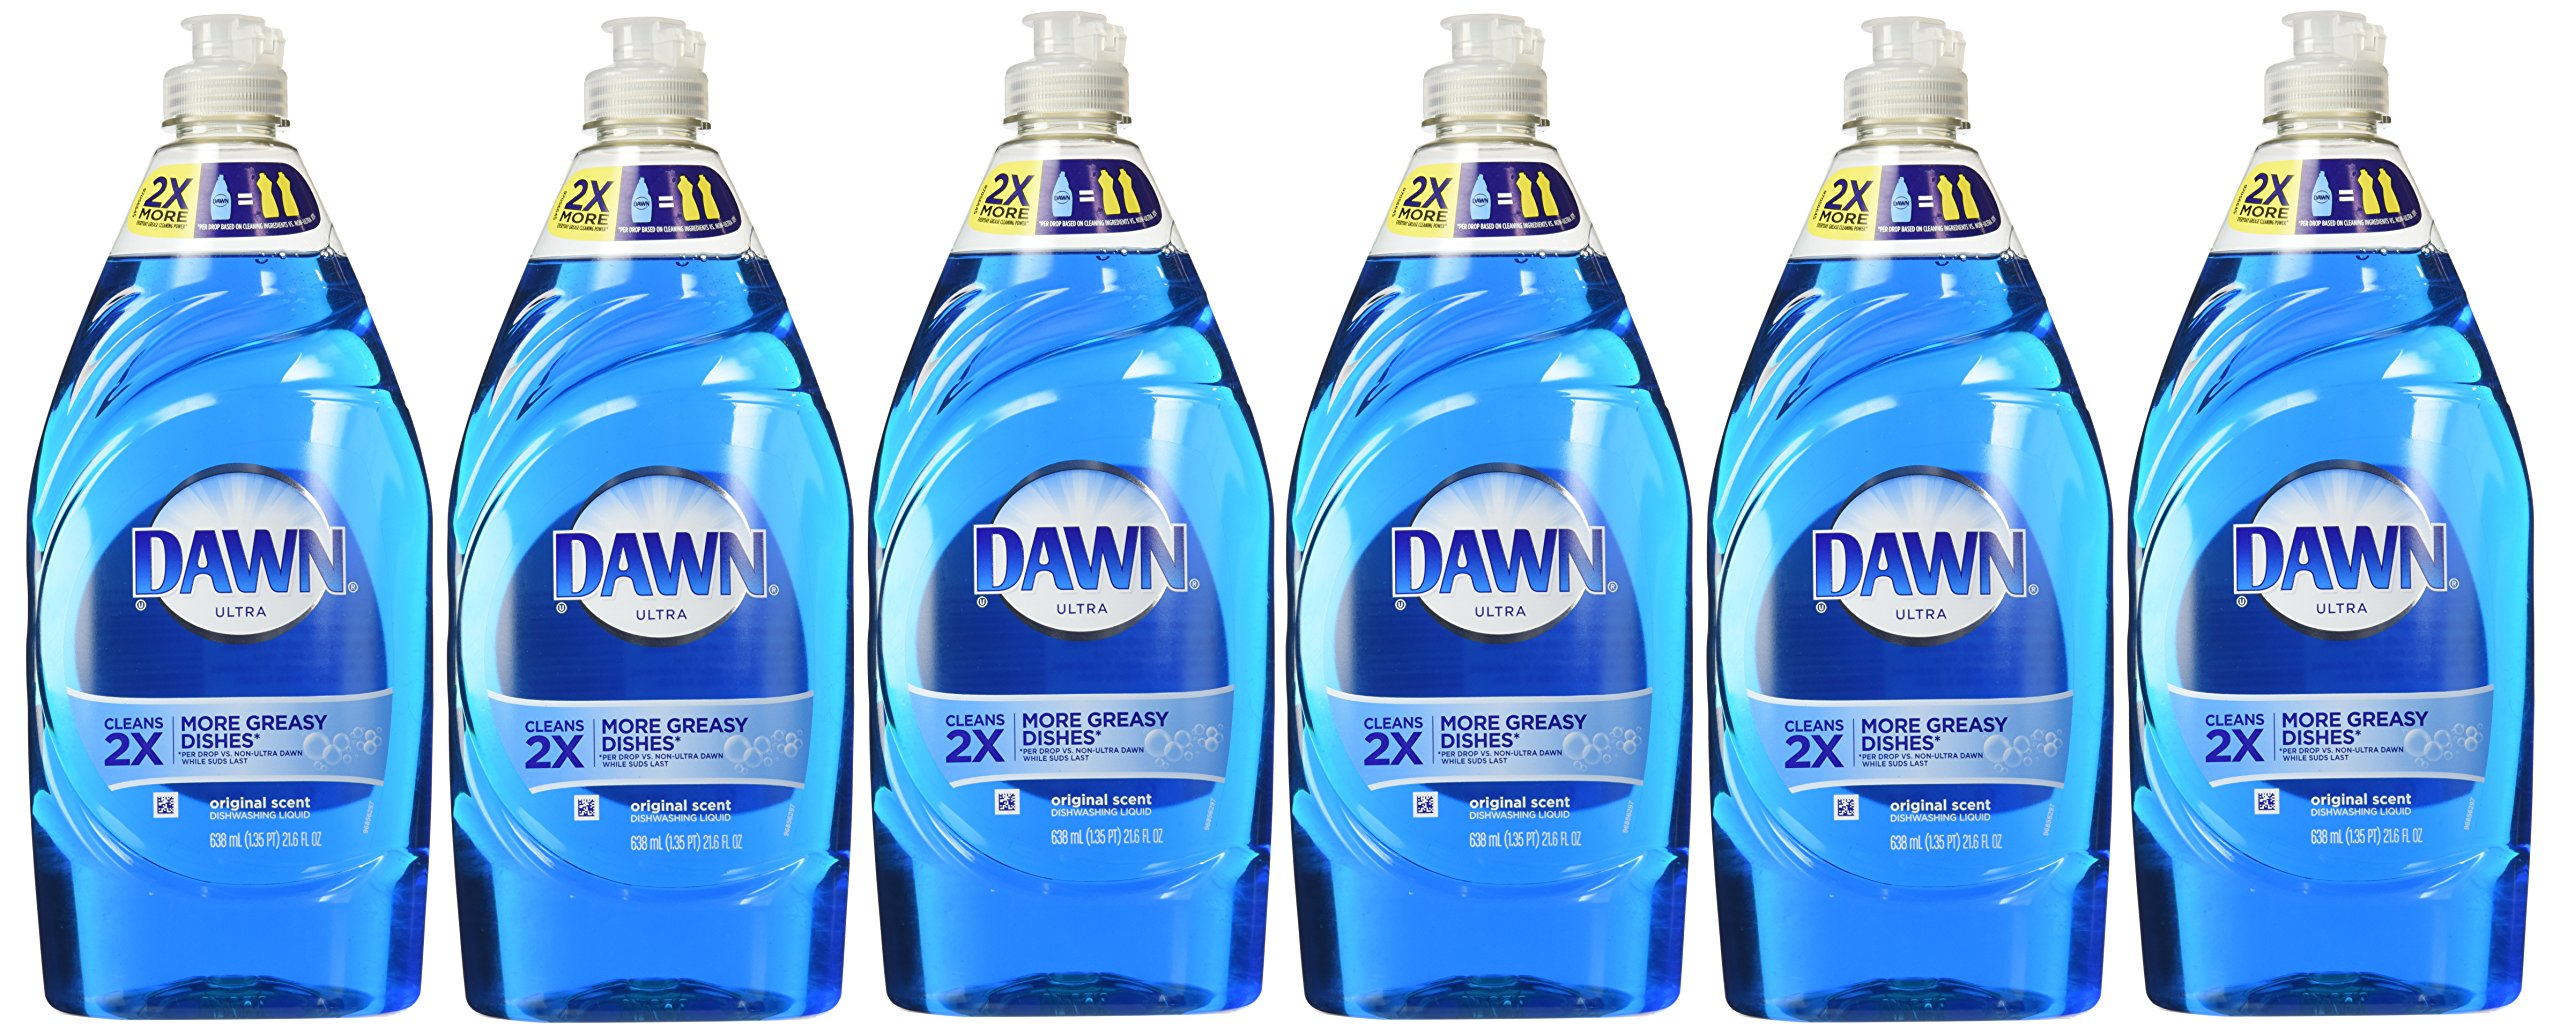 Dawn Ultra Original Scent Dishwashing Liquid 21.6 Fl Oz (6 Bottles)